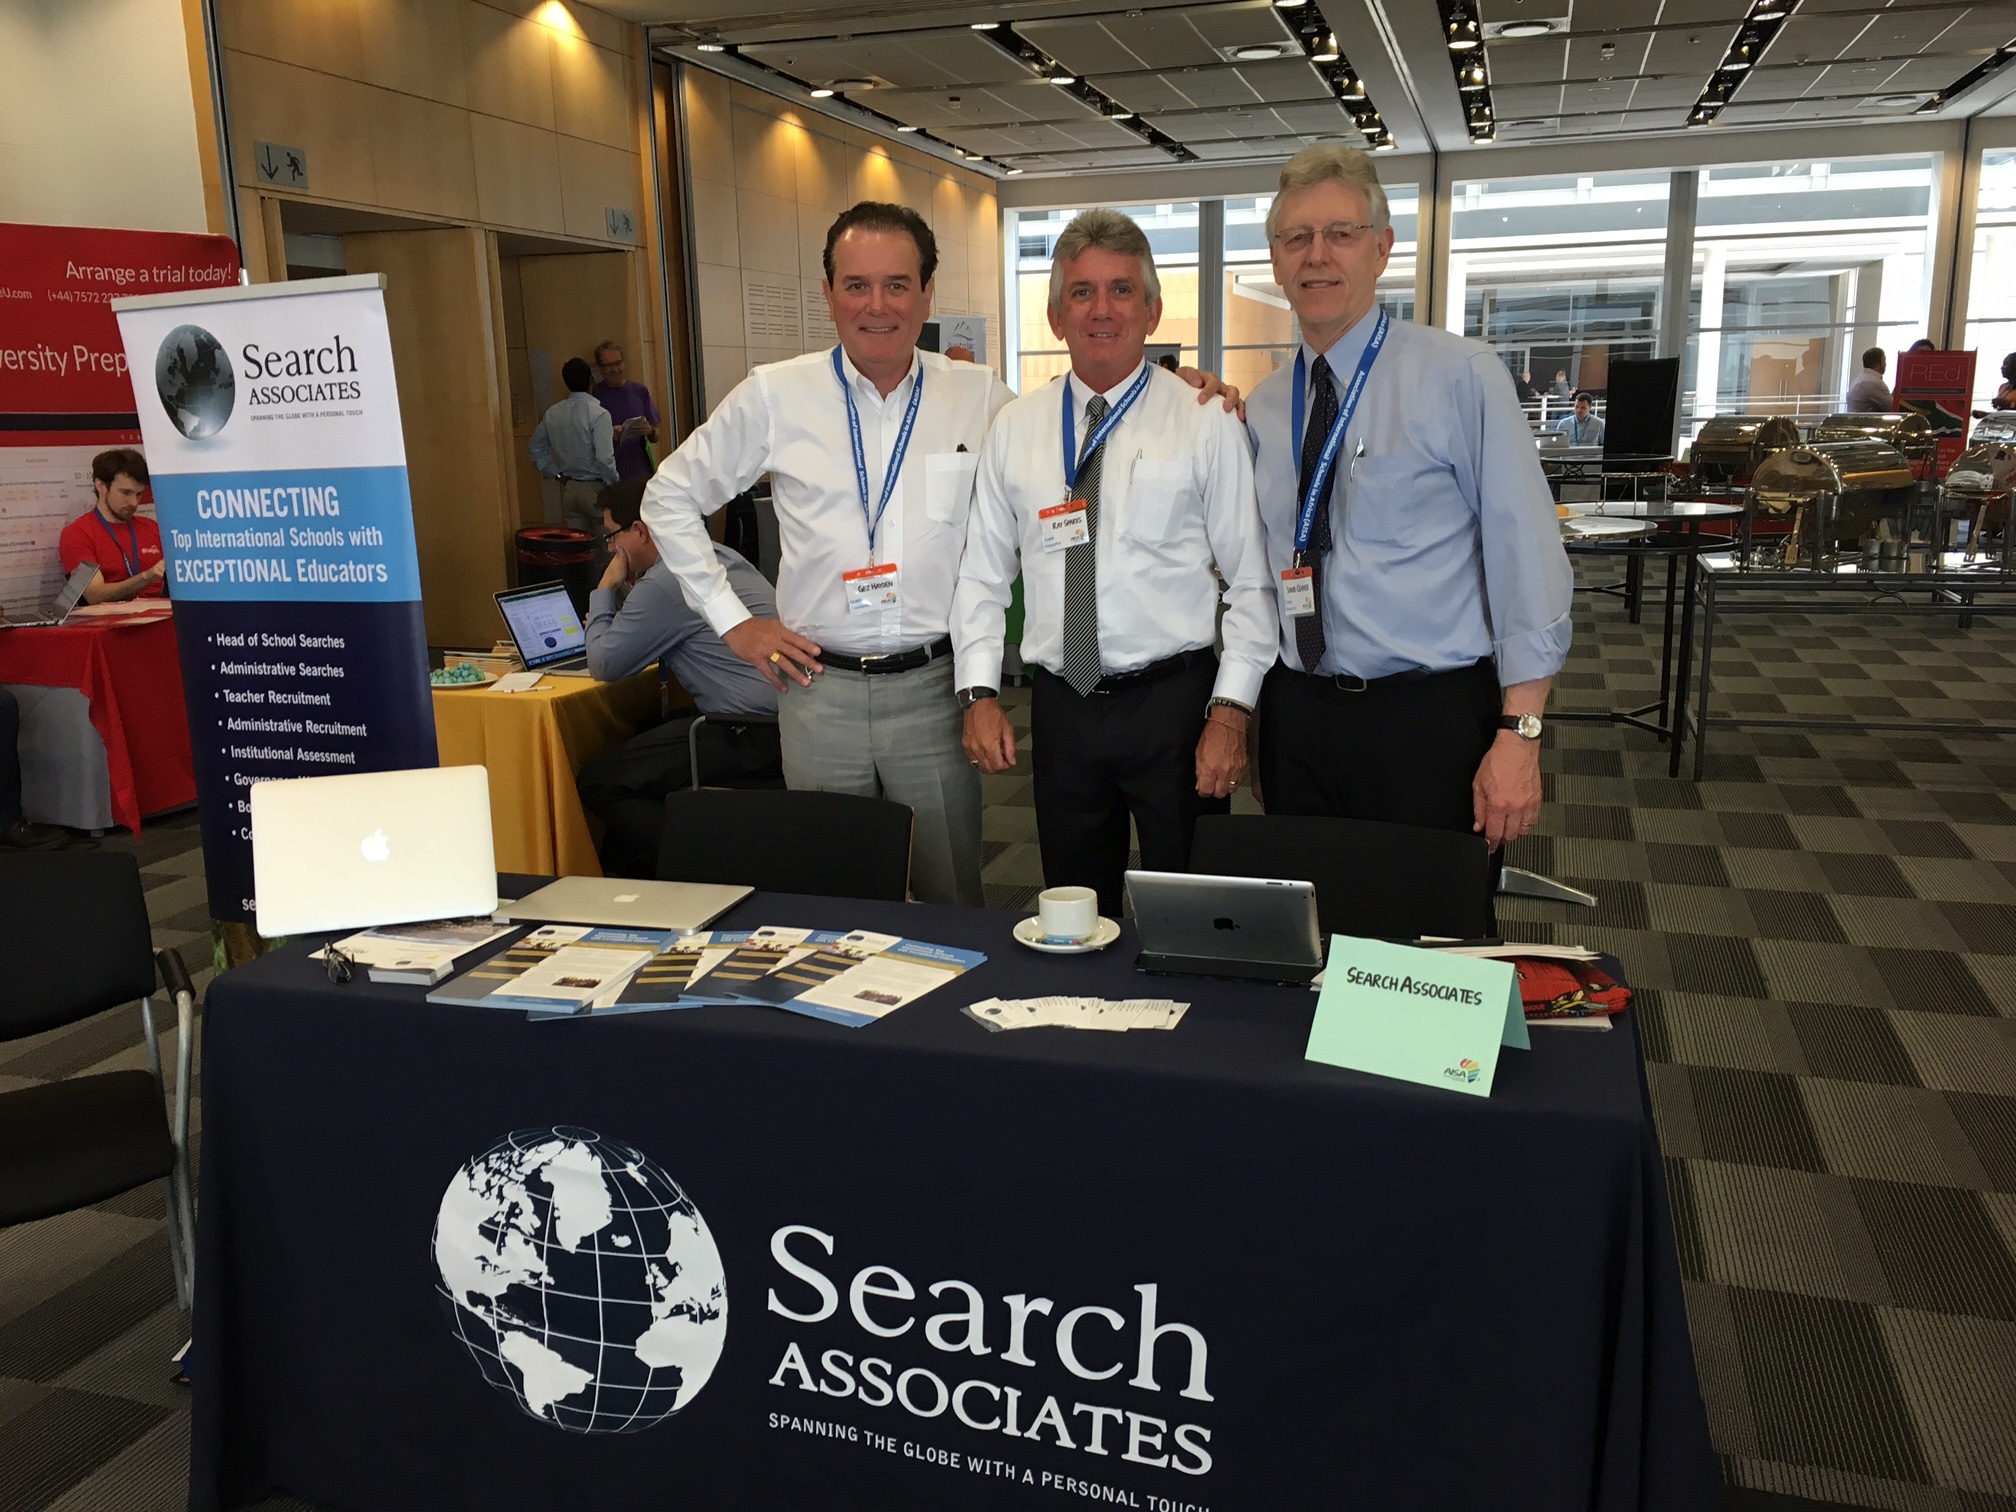 Associates at NESA conference. From left:  Gez Hayden, Ray Sparks, and Dr. David Cramer